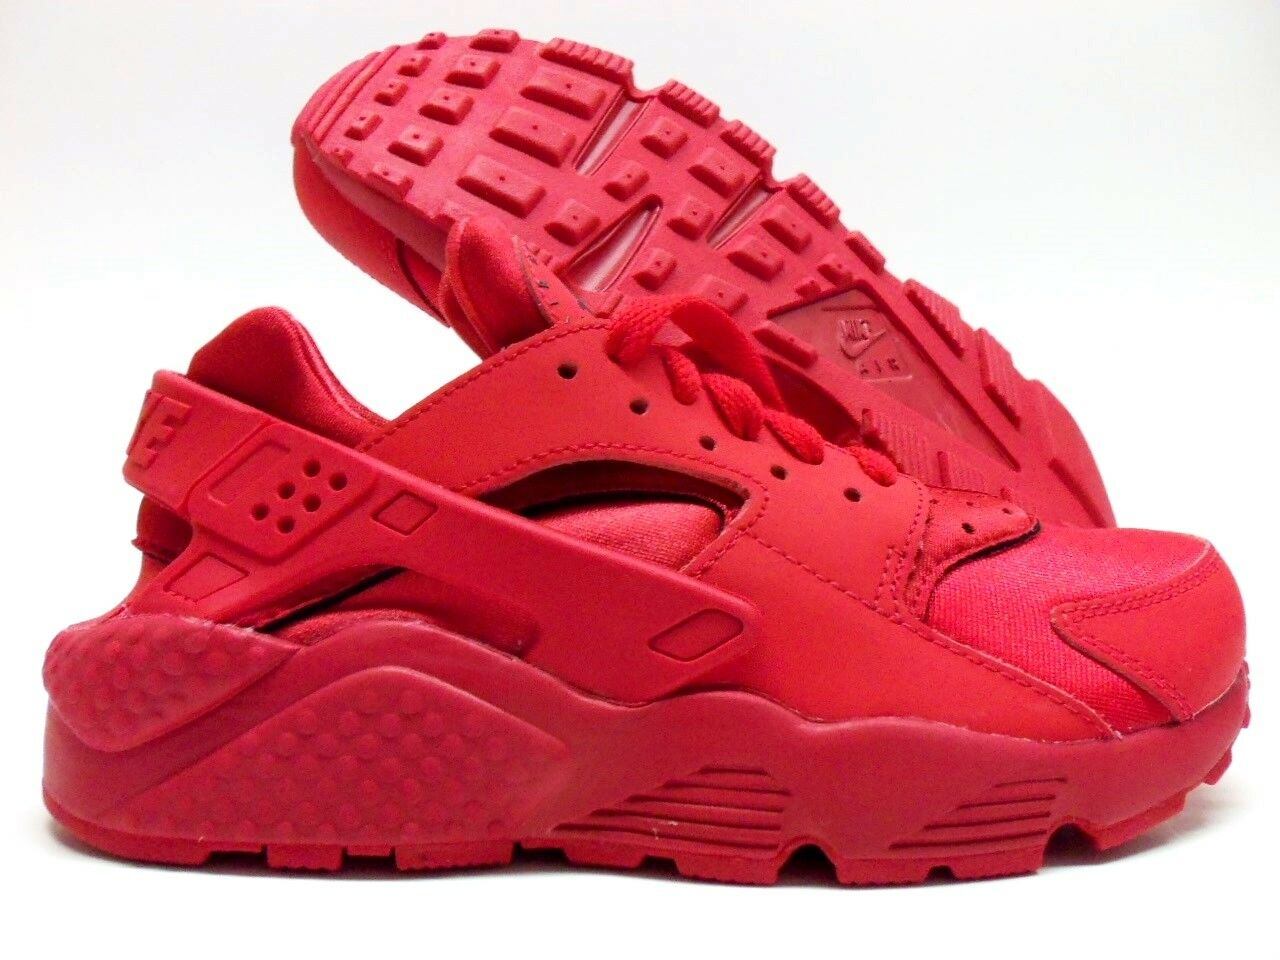 8de0098517ab NIKE NIKE NIKE AIR HUARACHE ID OCTOBER RED SPORT RED SIZE WOMEN S 6   777331-978  8a3d5f